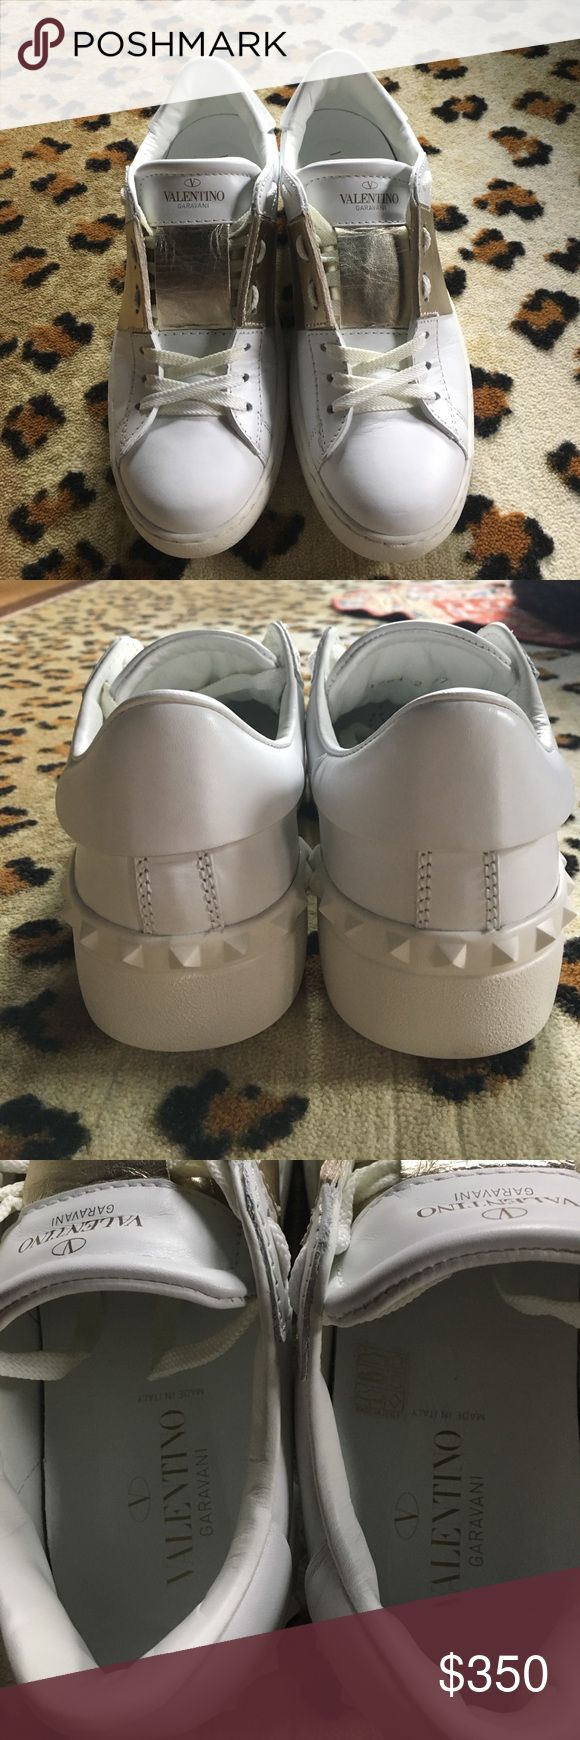 Metallic Band Valentino Sneaker 37 Size 37 Authentic Valentino Sneaker. EUC I do not have box or dust bags. Purchased from Neiman Marcus online but they are too small. Valentino Garavani Shoes Sneakers